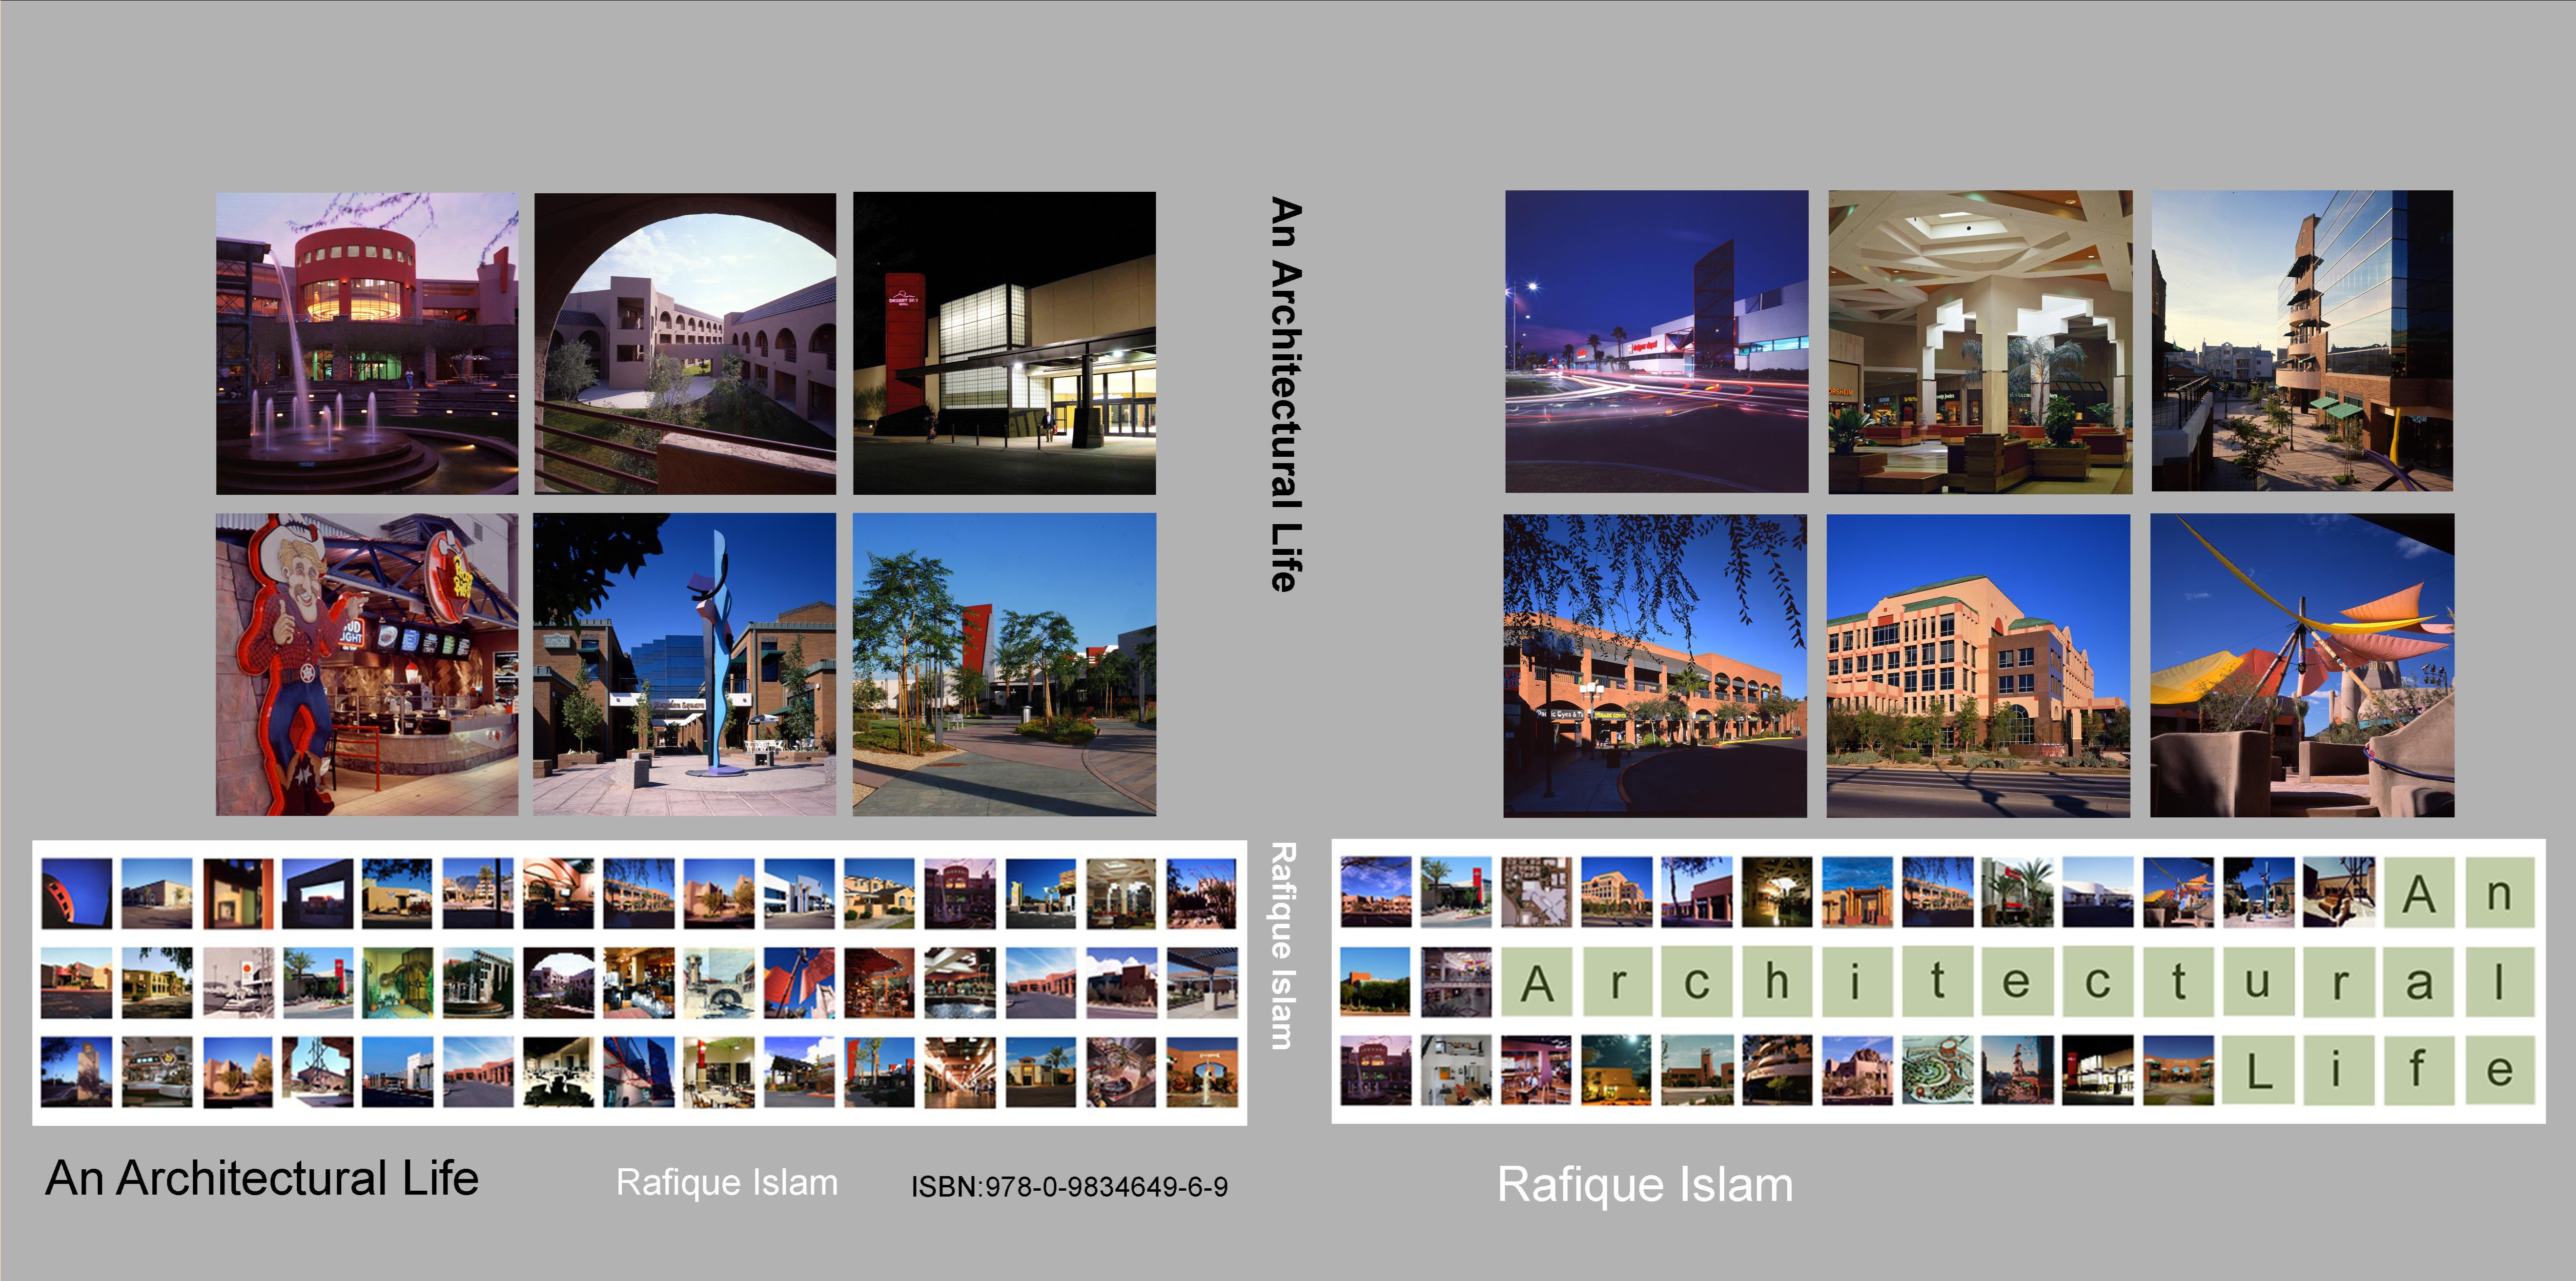 Rafique Islam, An Architectural Life cover image